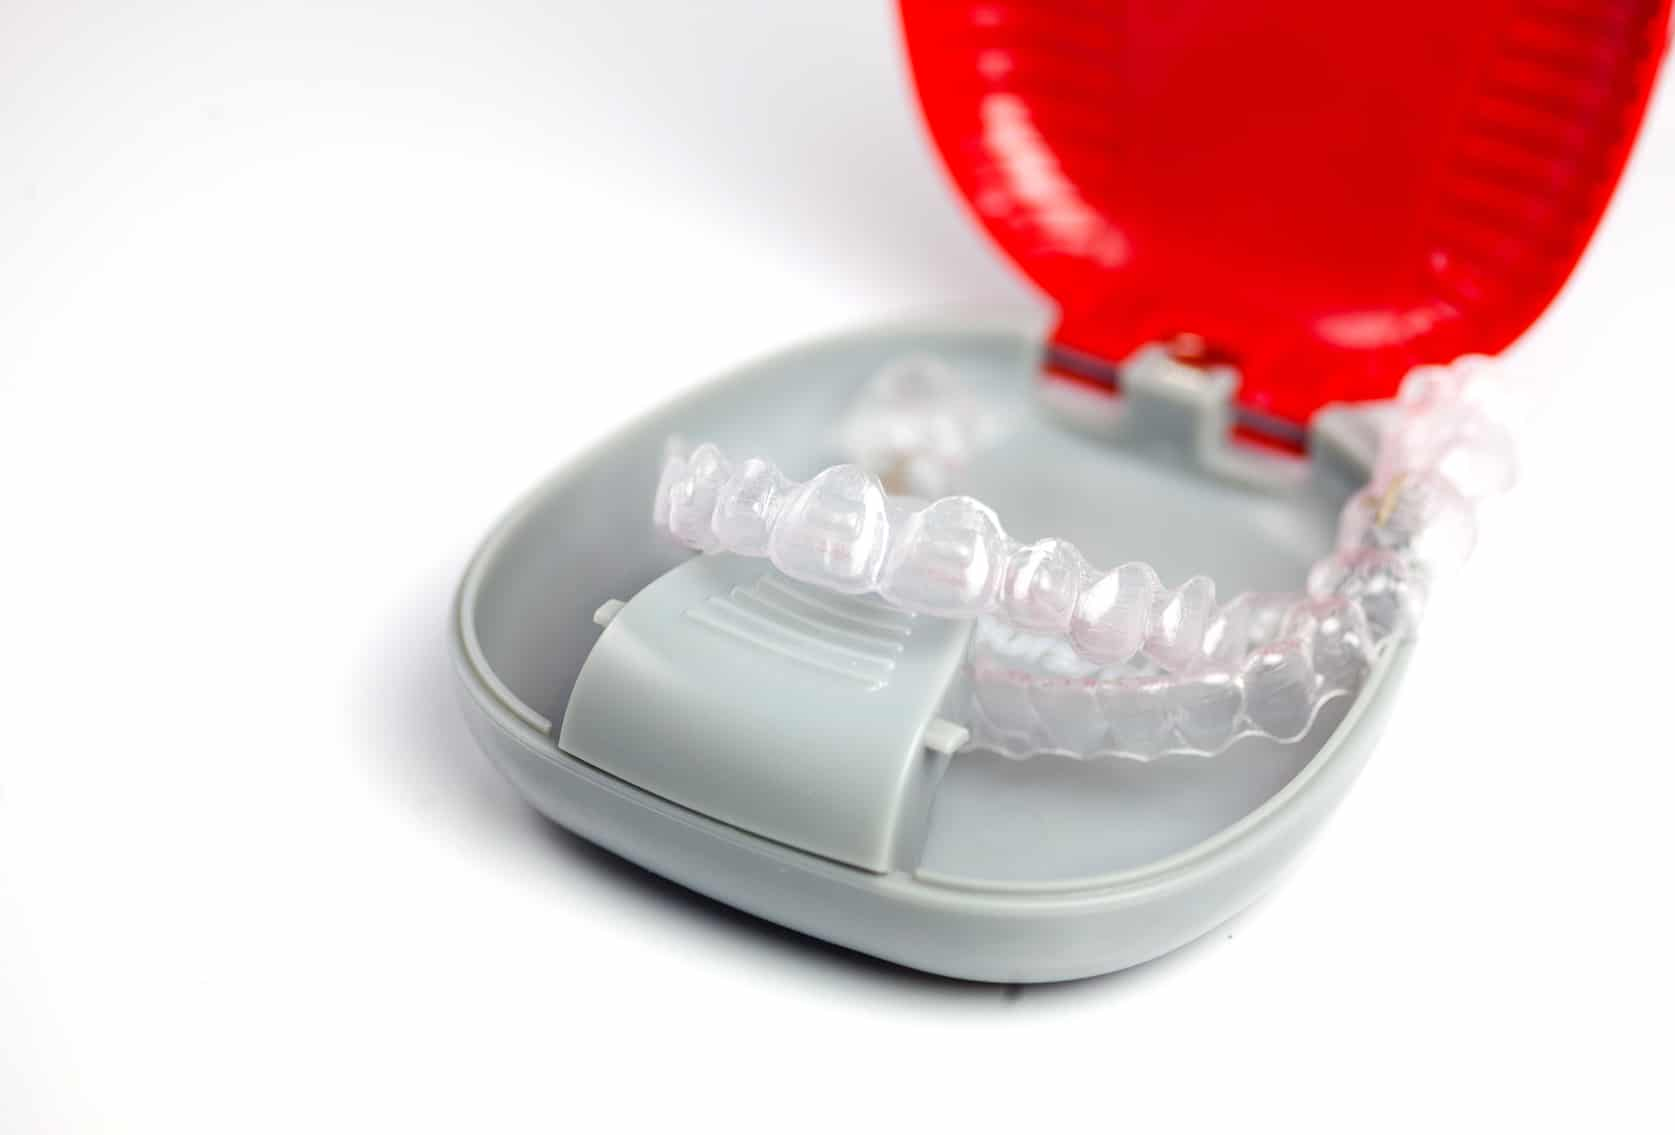 Clear orthodontic aligners in a red storage case on white